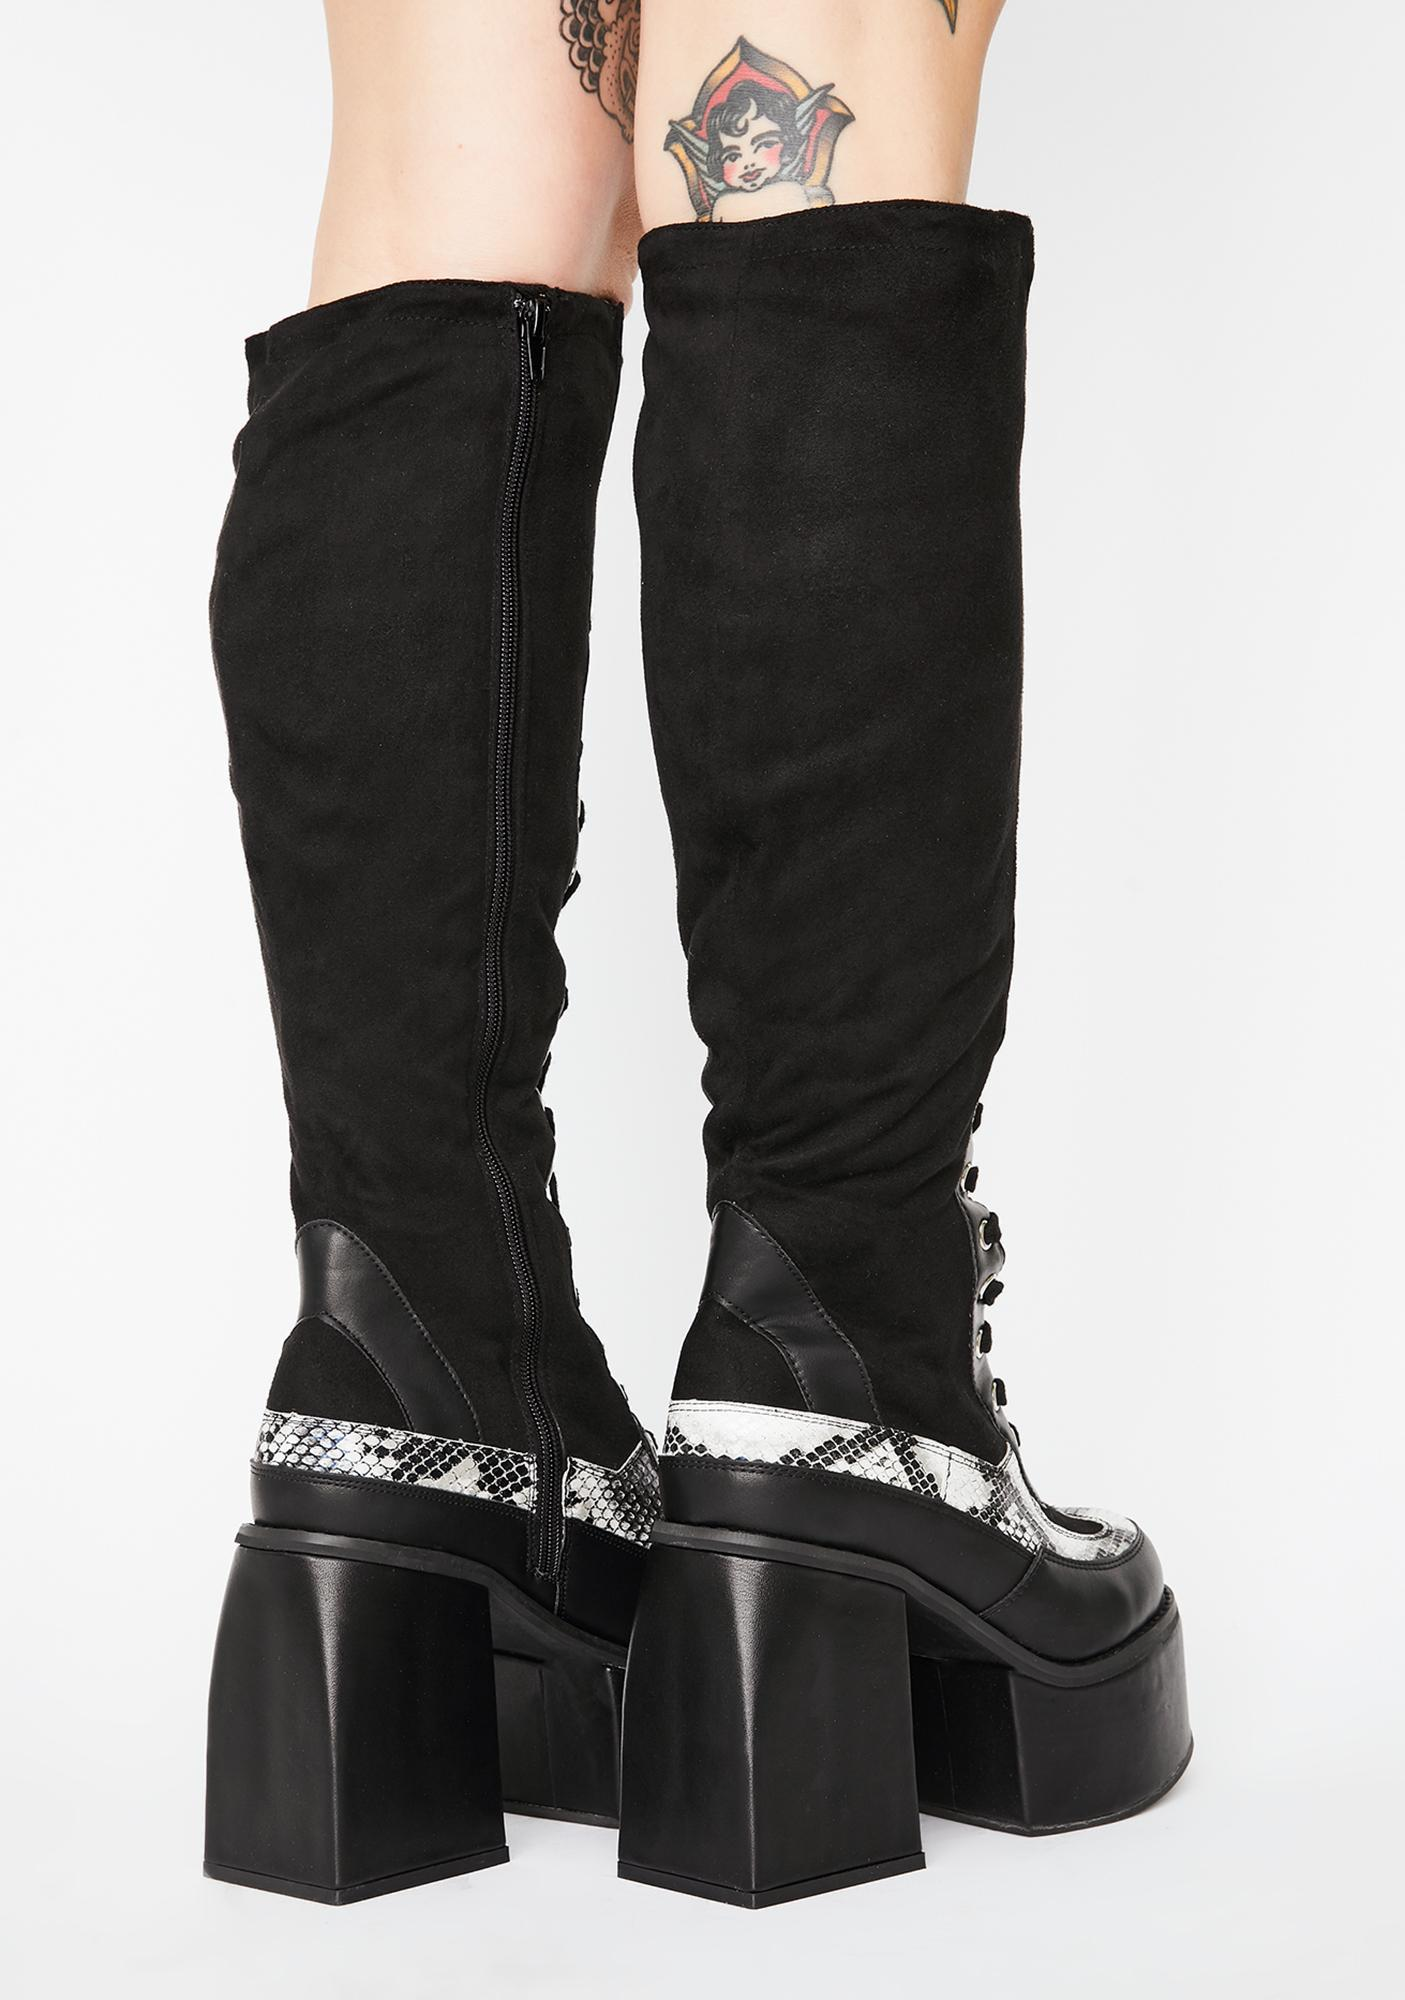 Stomp U Out Knee High Boots